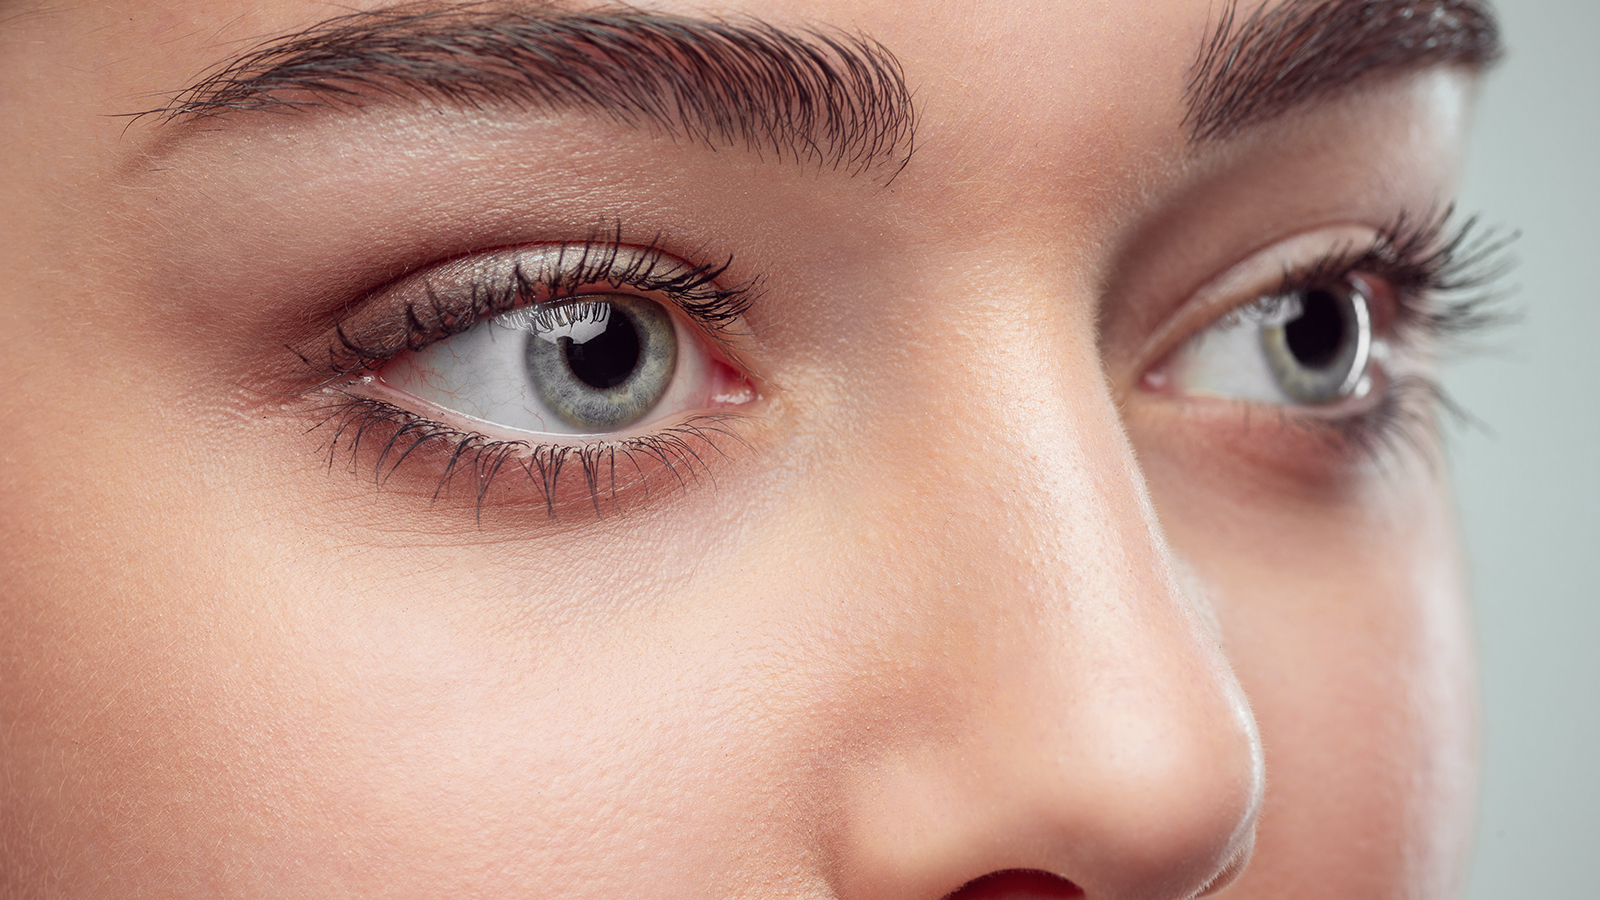 7 healthy tips for maintaining healthy eyes and vision